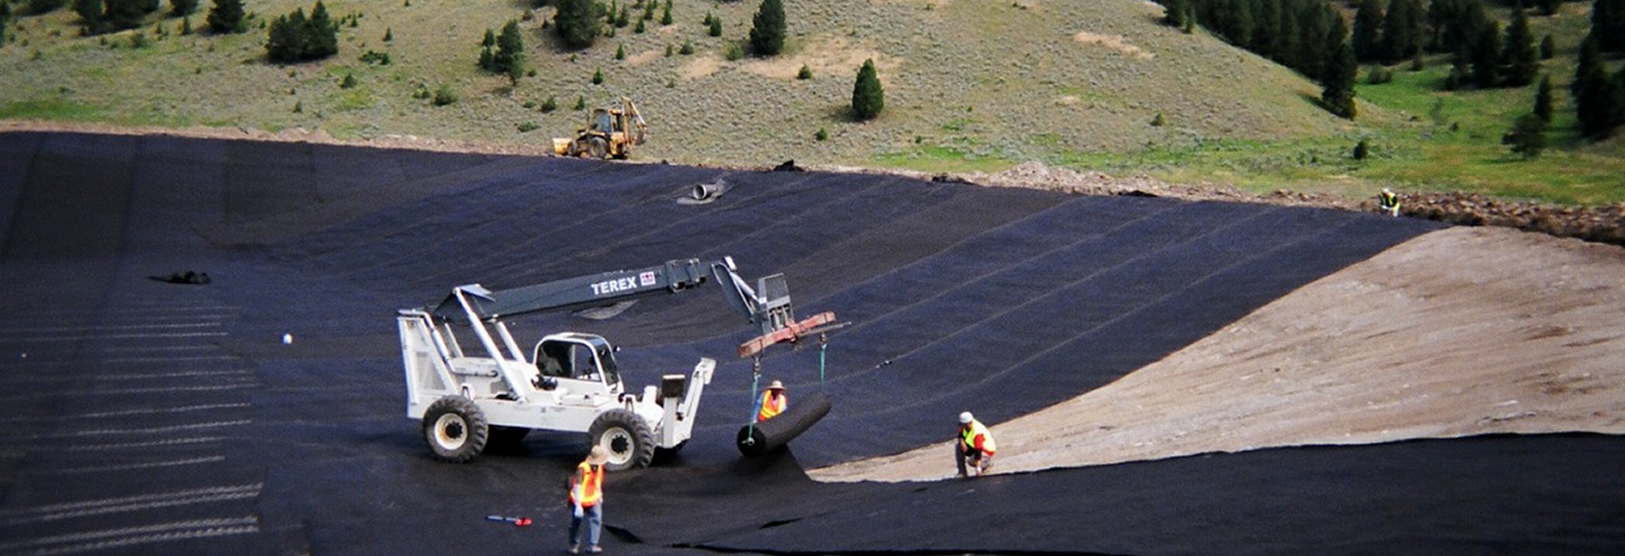 Flexible and durable geomembrane for a variety of applications